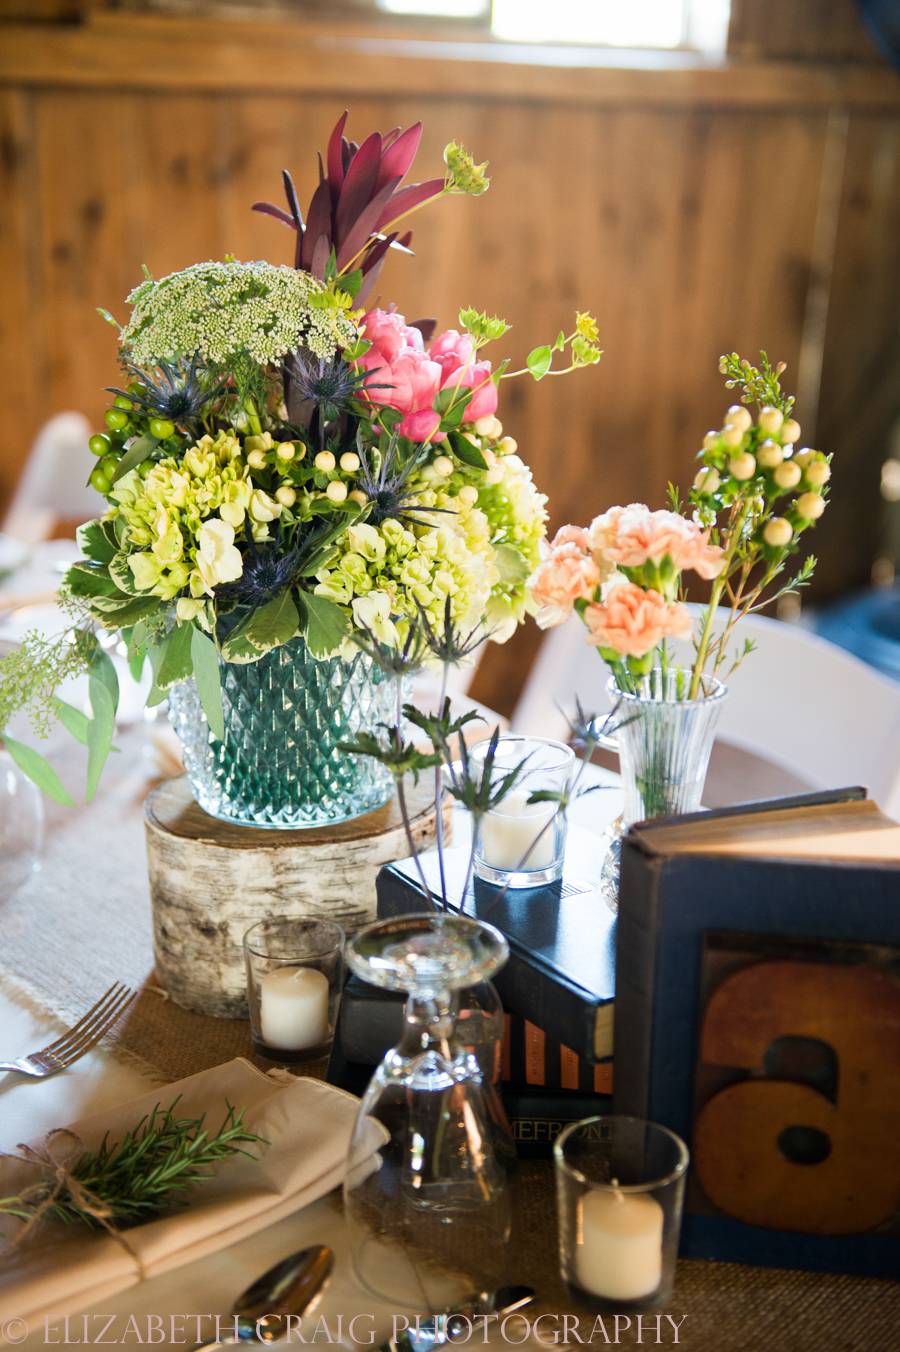 Shady Elms Farm Weddings and Receptions Elizabeth Craig Photography-0083